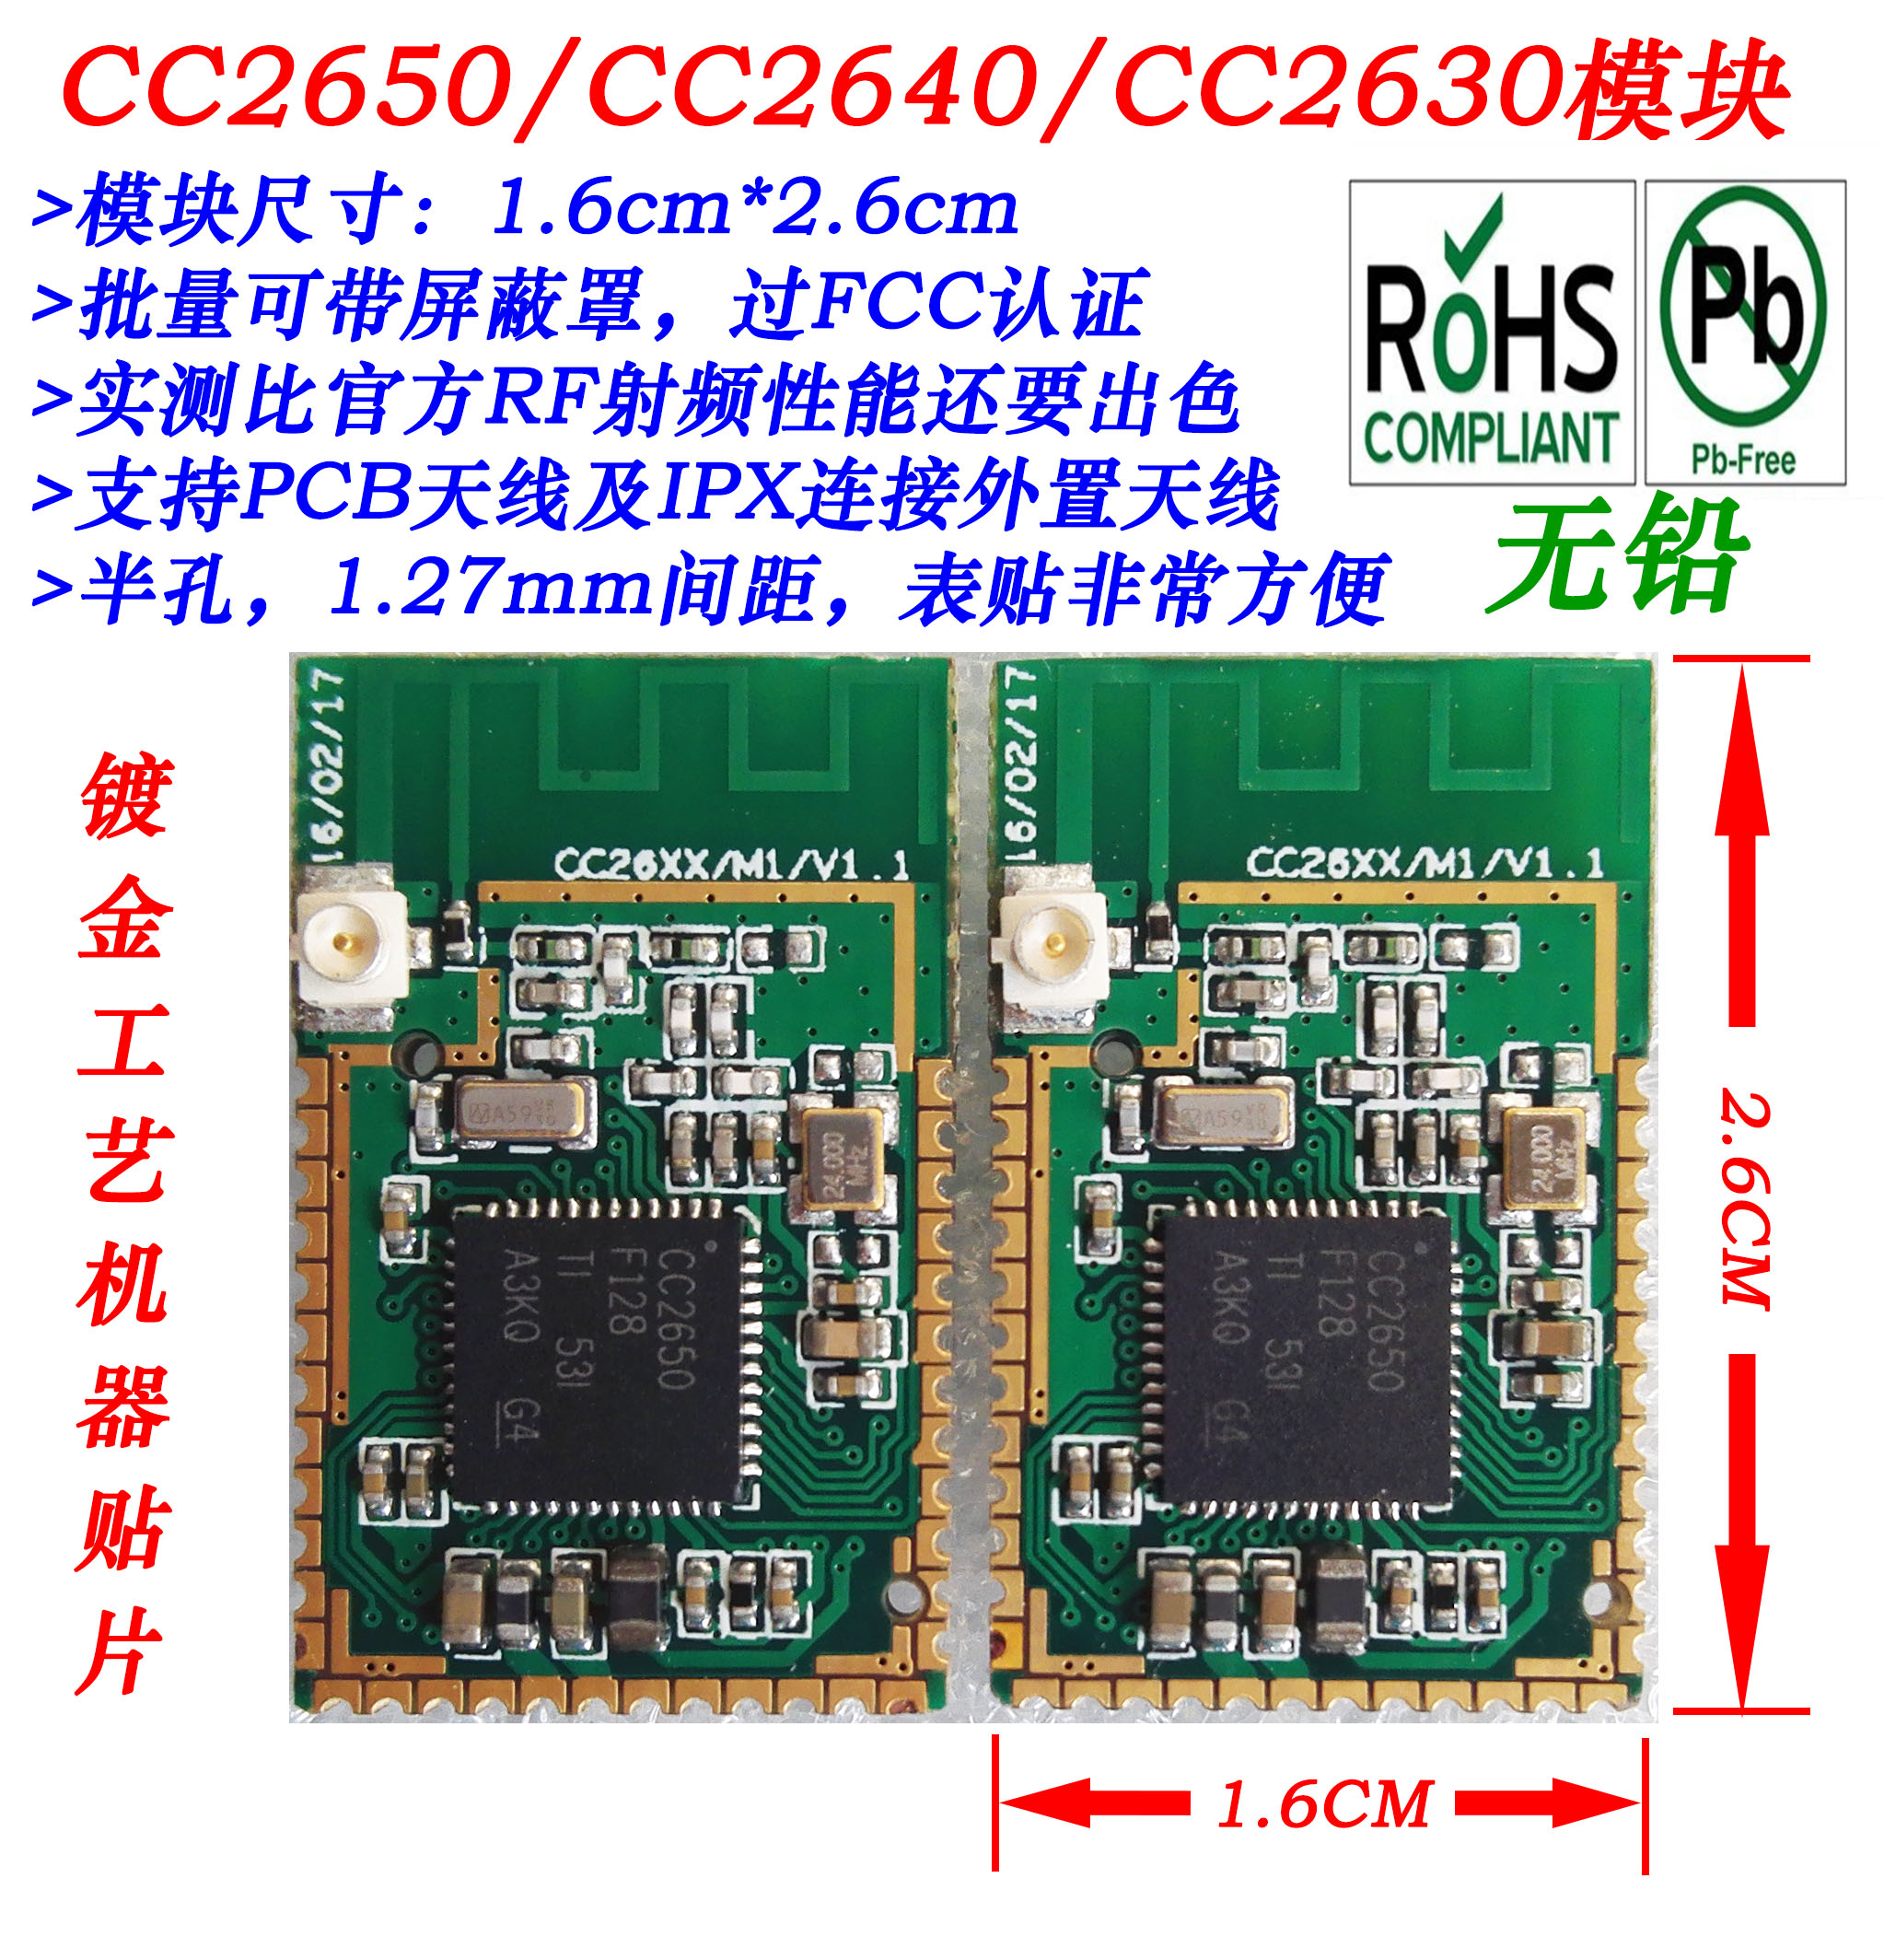 cc2640 cc2630 cc2650 bluetooth module zigbee module cc2640 module in air conditioner parts from home appliances on aliexpress com alibaba group [ 2046 x 2128 Pixel ]